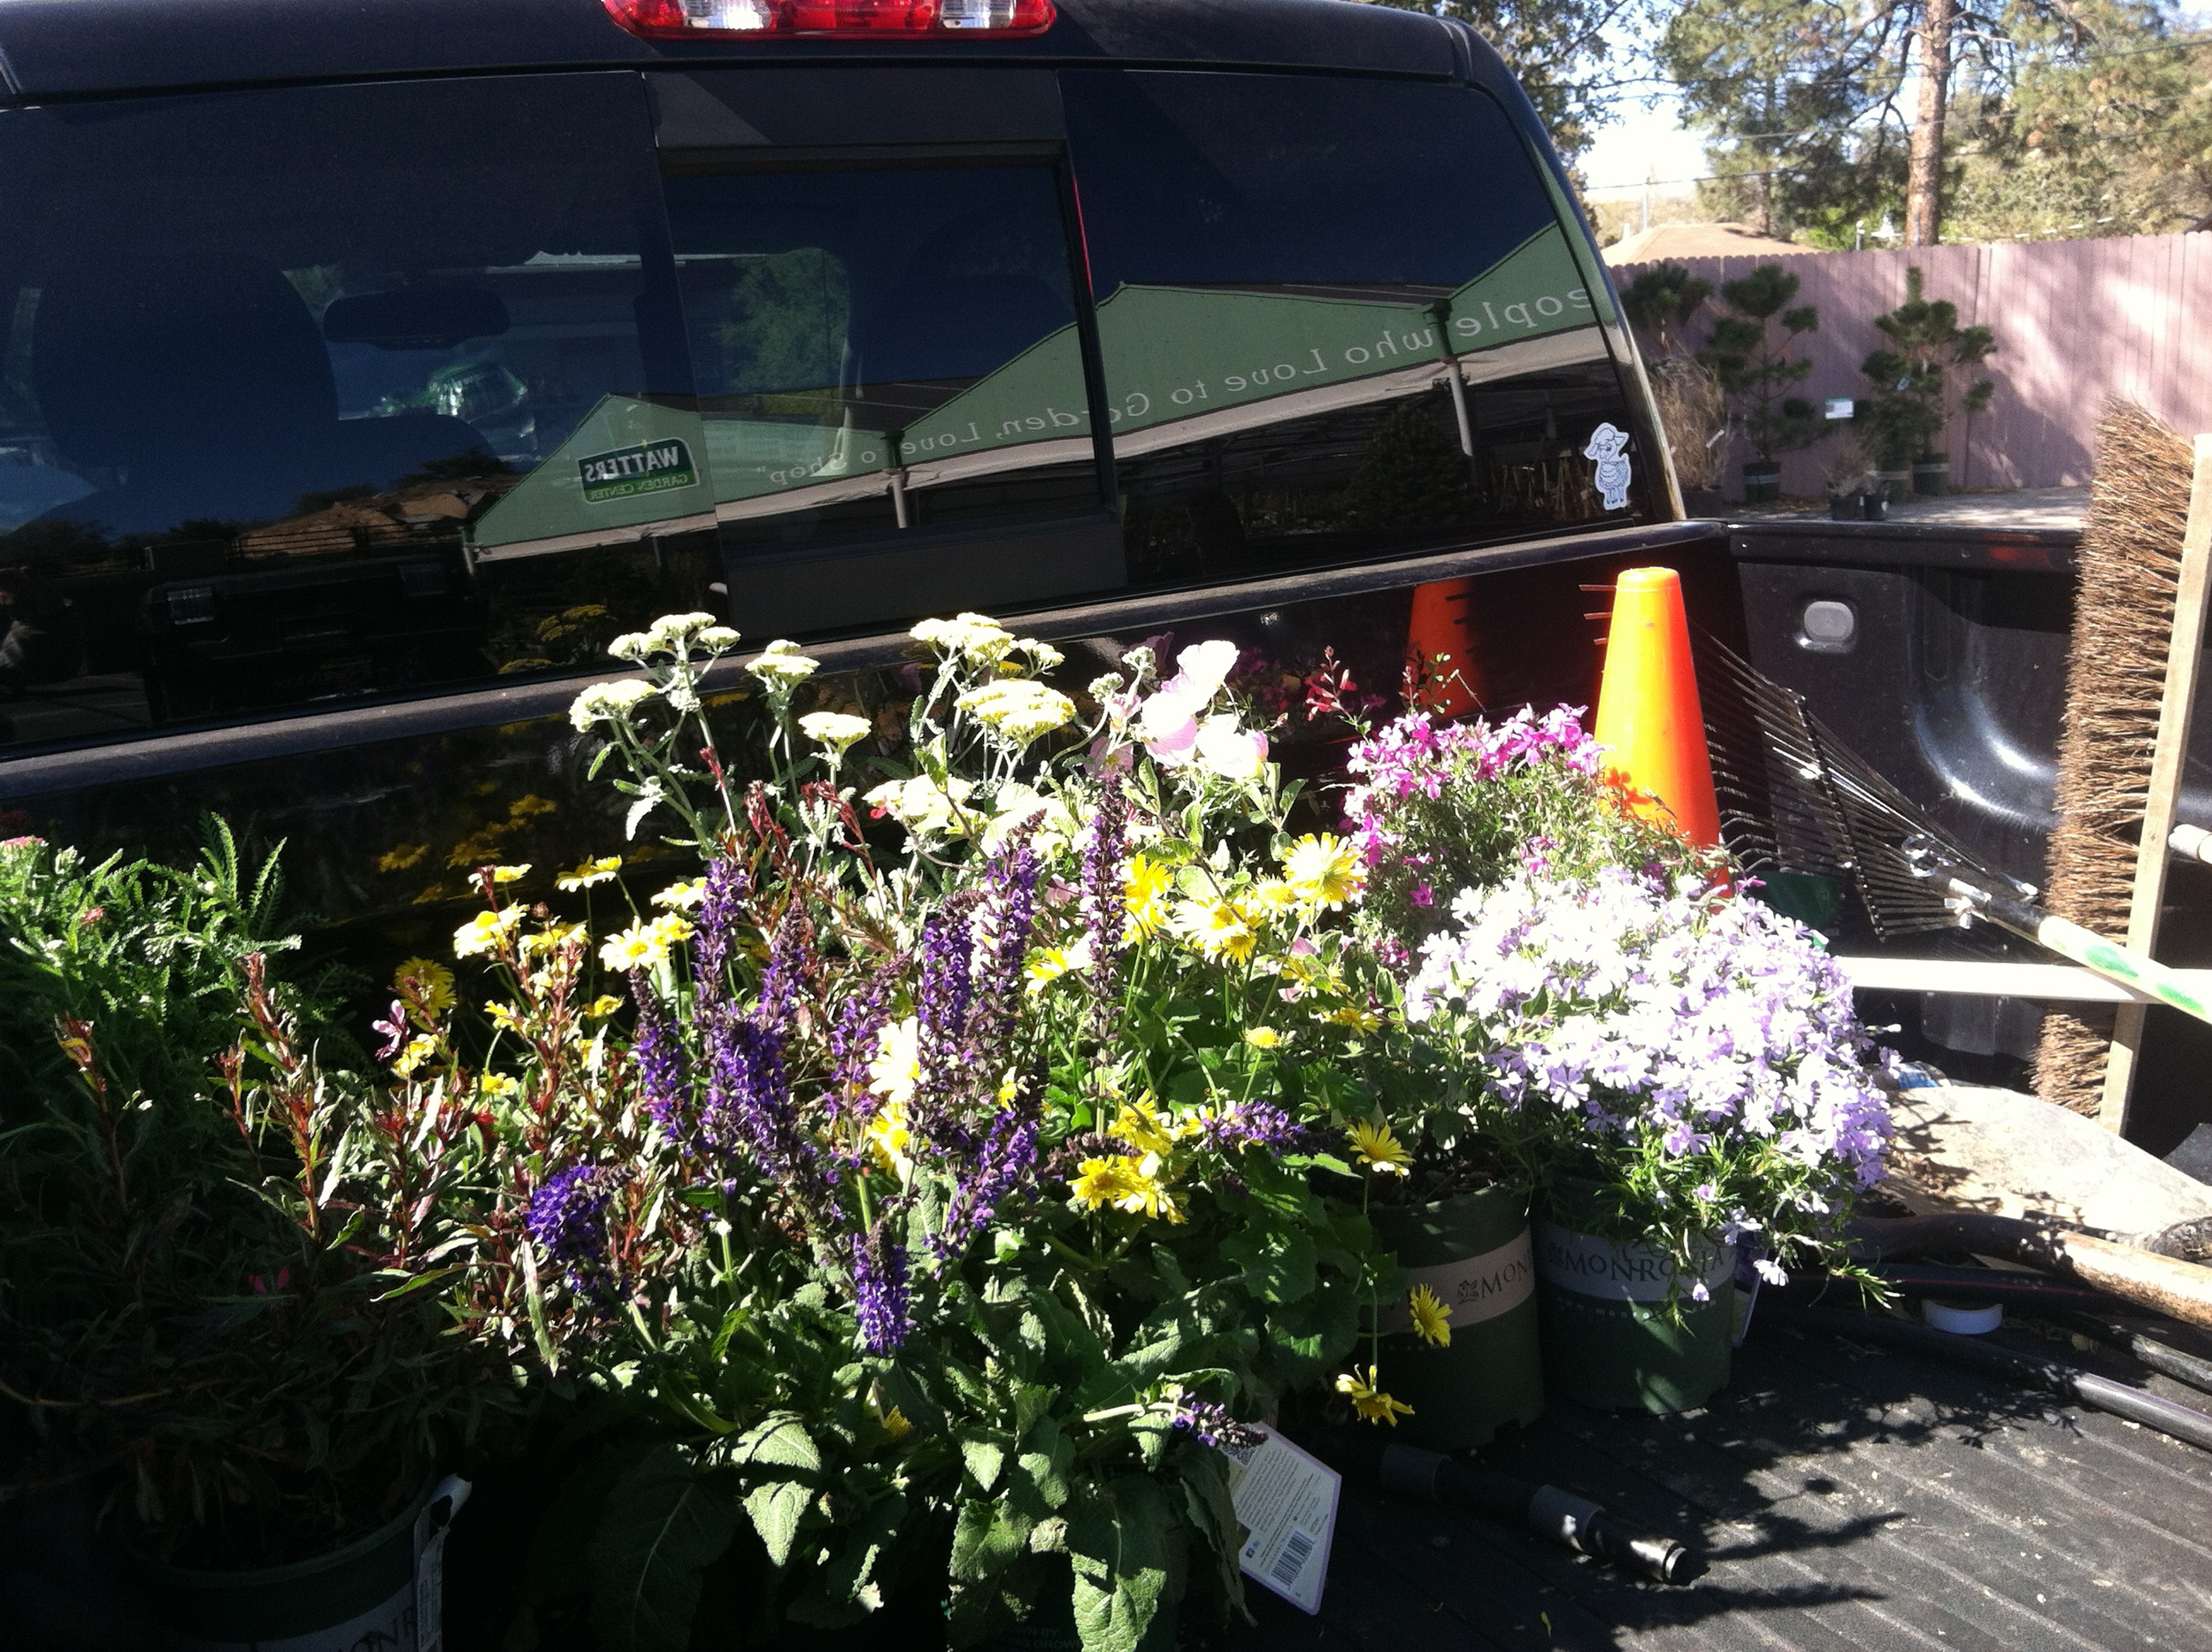 Picking up plants at the nursery